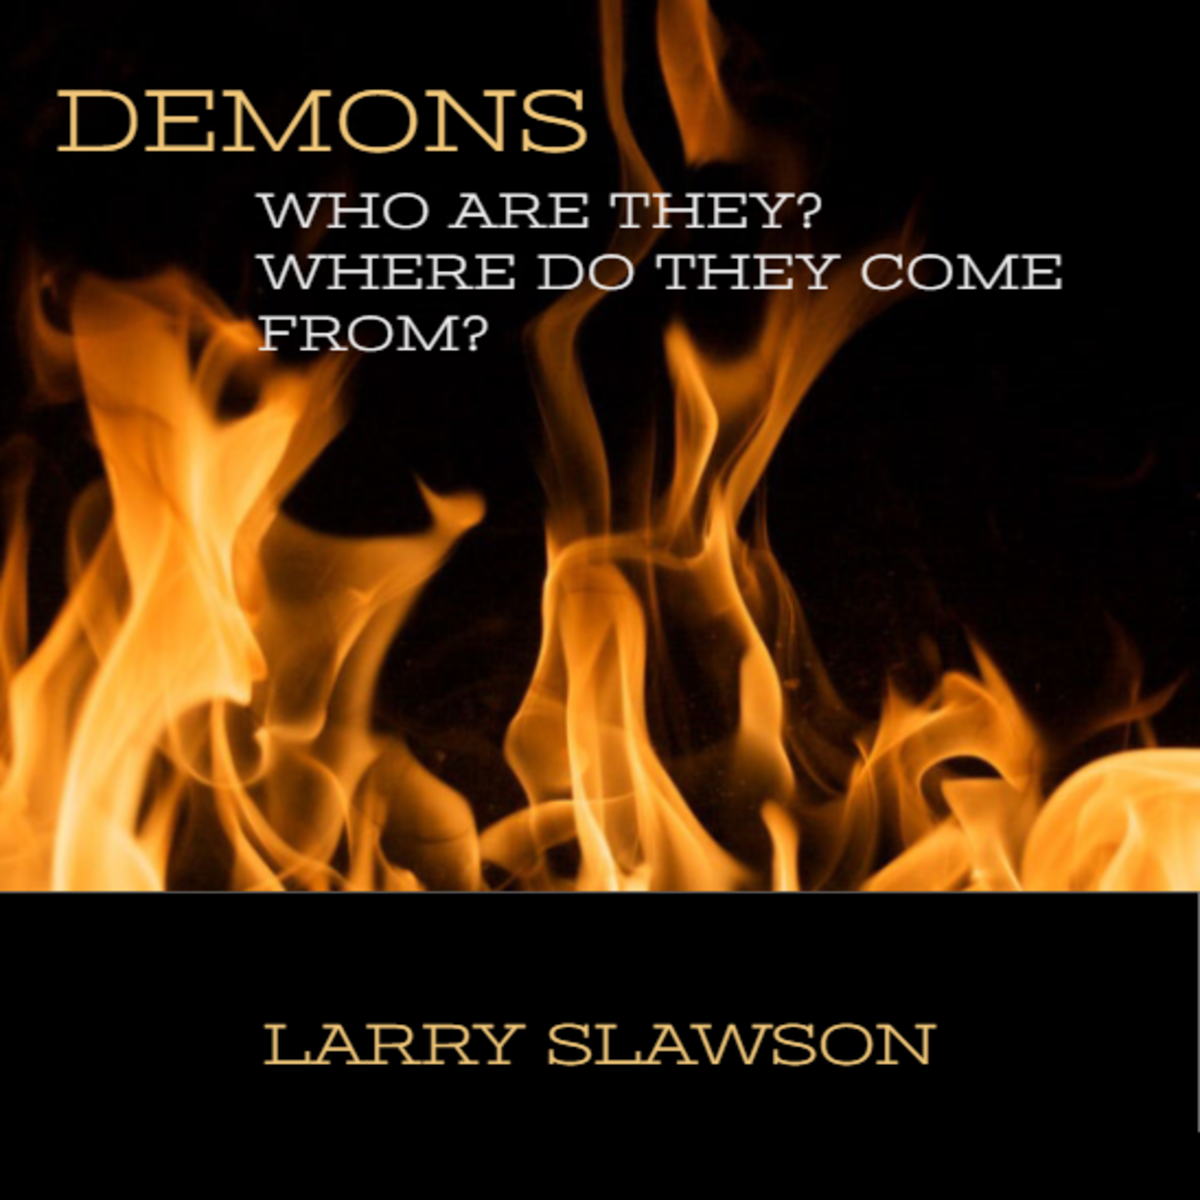 What Are Demons?